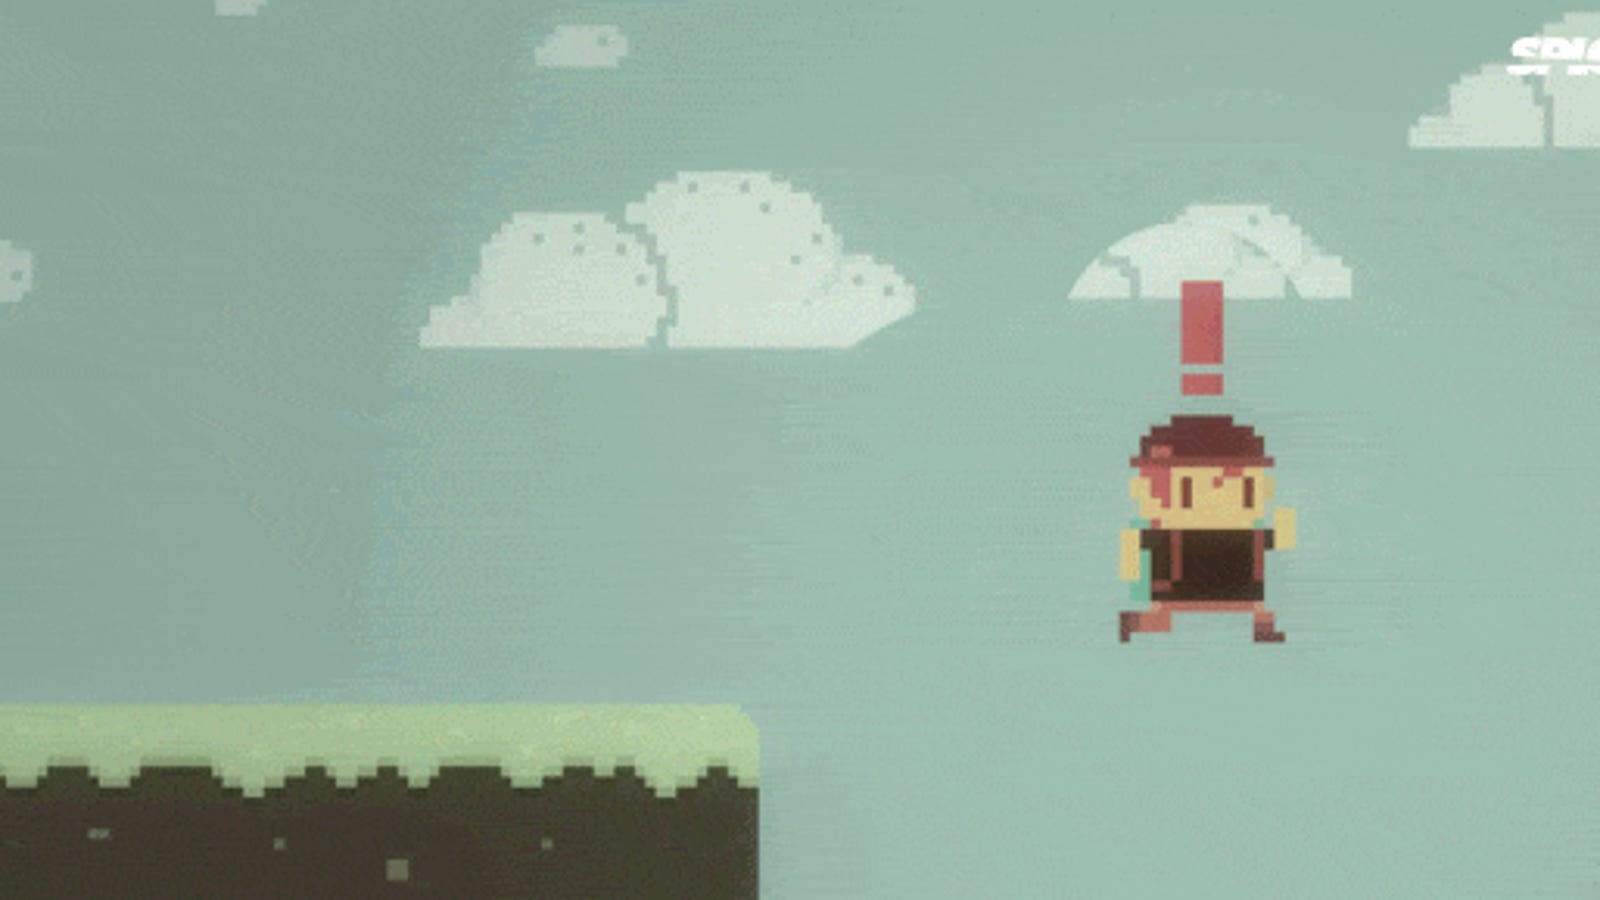 This video game sums up life in the most heartbreaking way possible